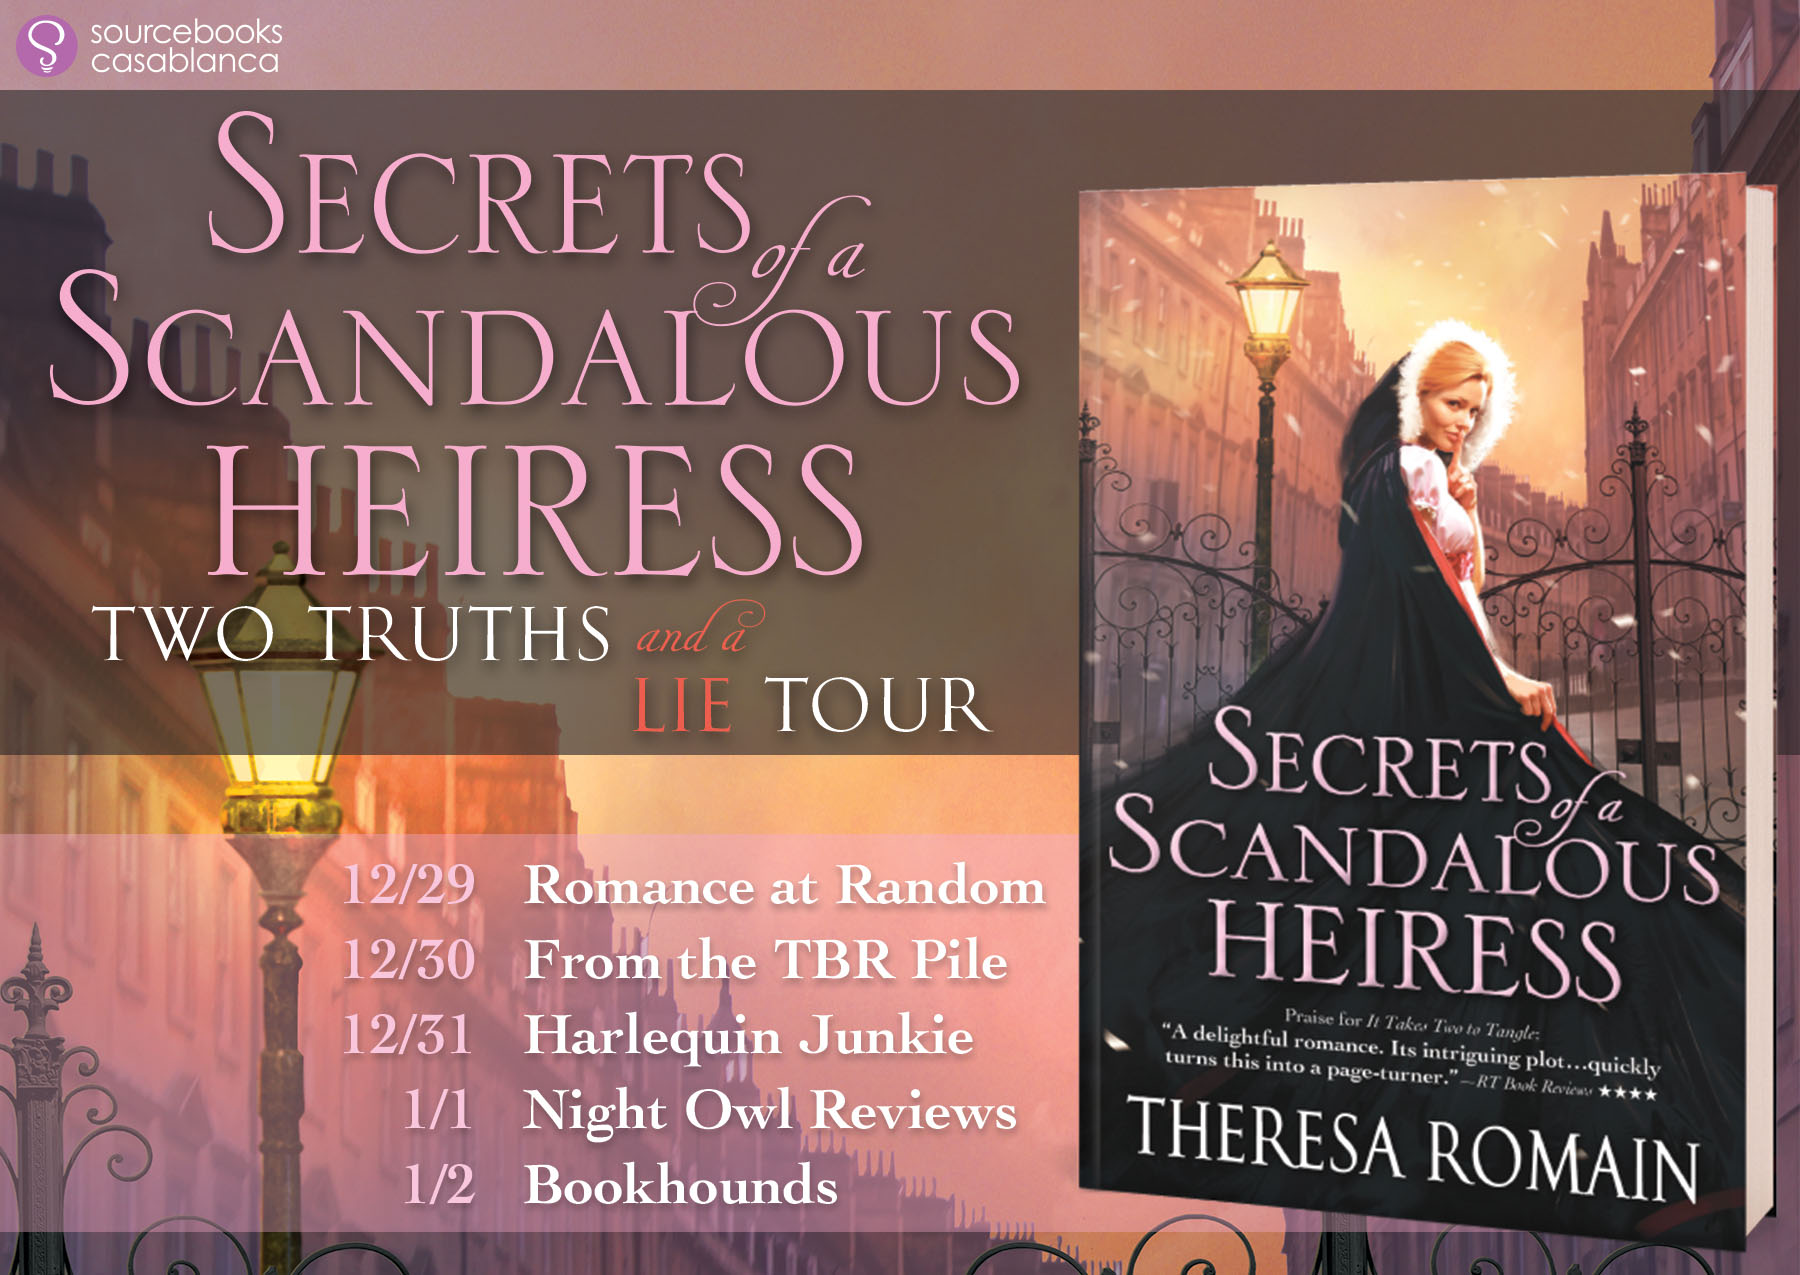 Two Truths and a Lie #ScandalousSecrets Tour #Giveaway with THERESA ROMAIN @TheresaRomain @SourcebooksCasa